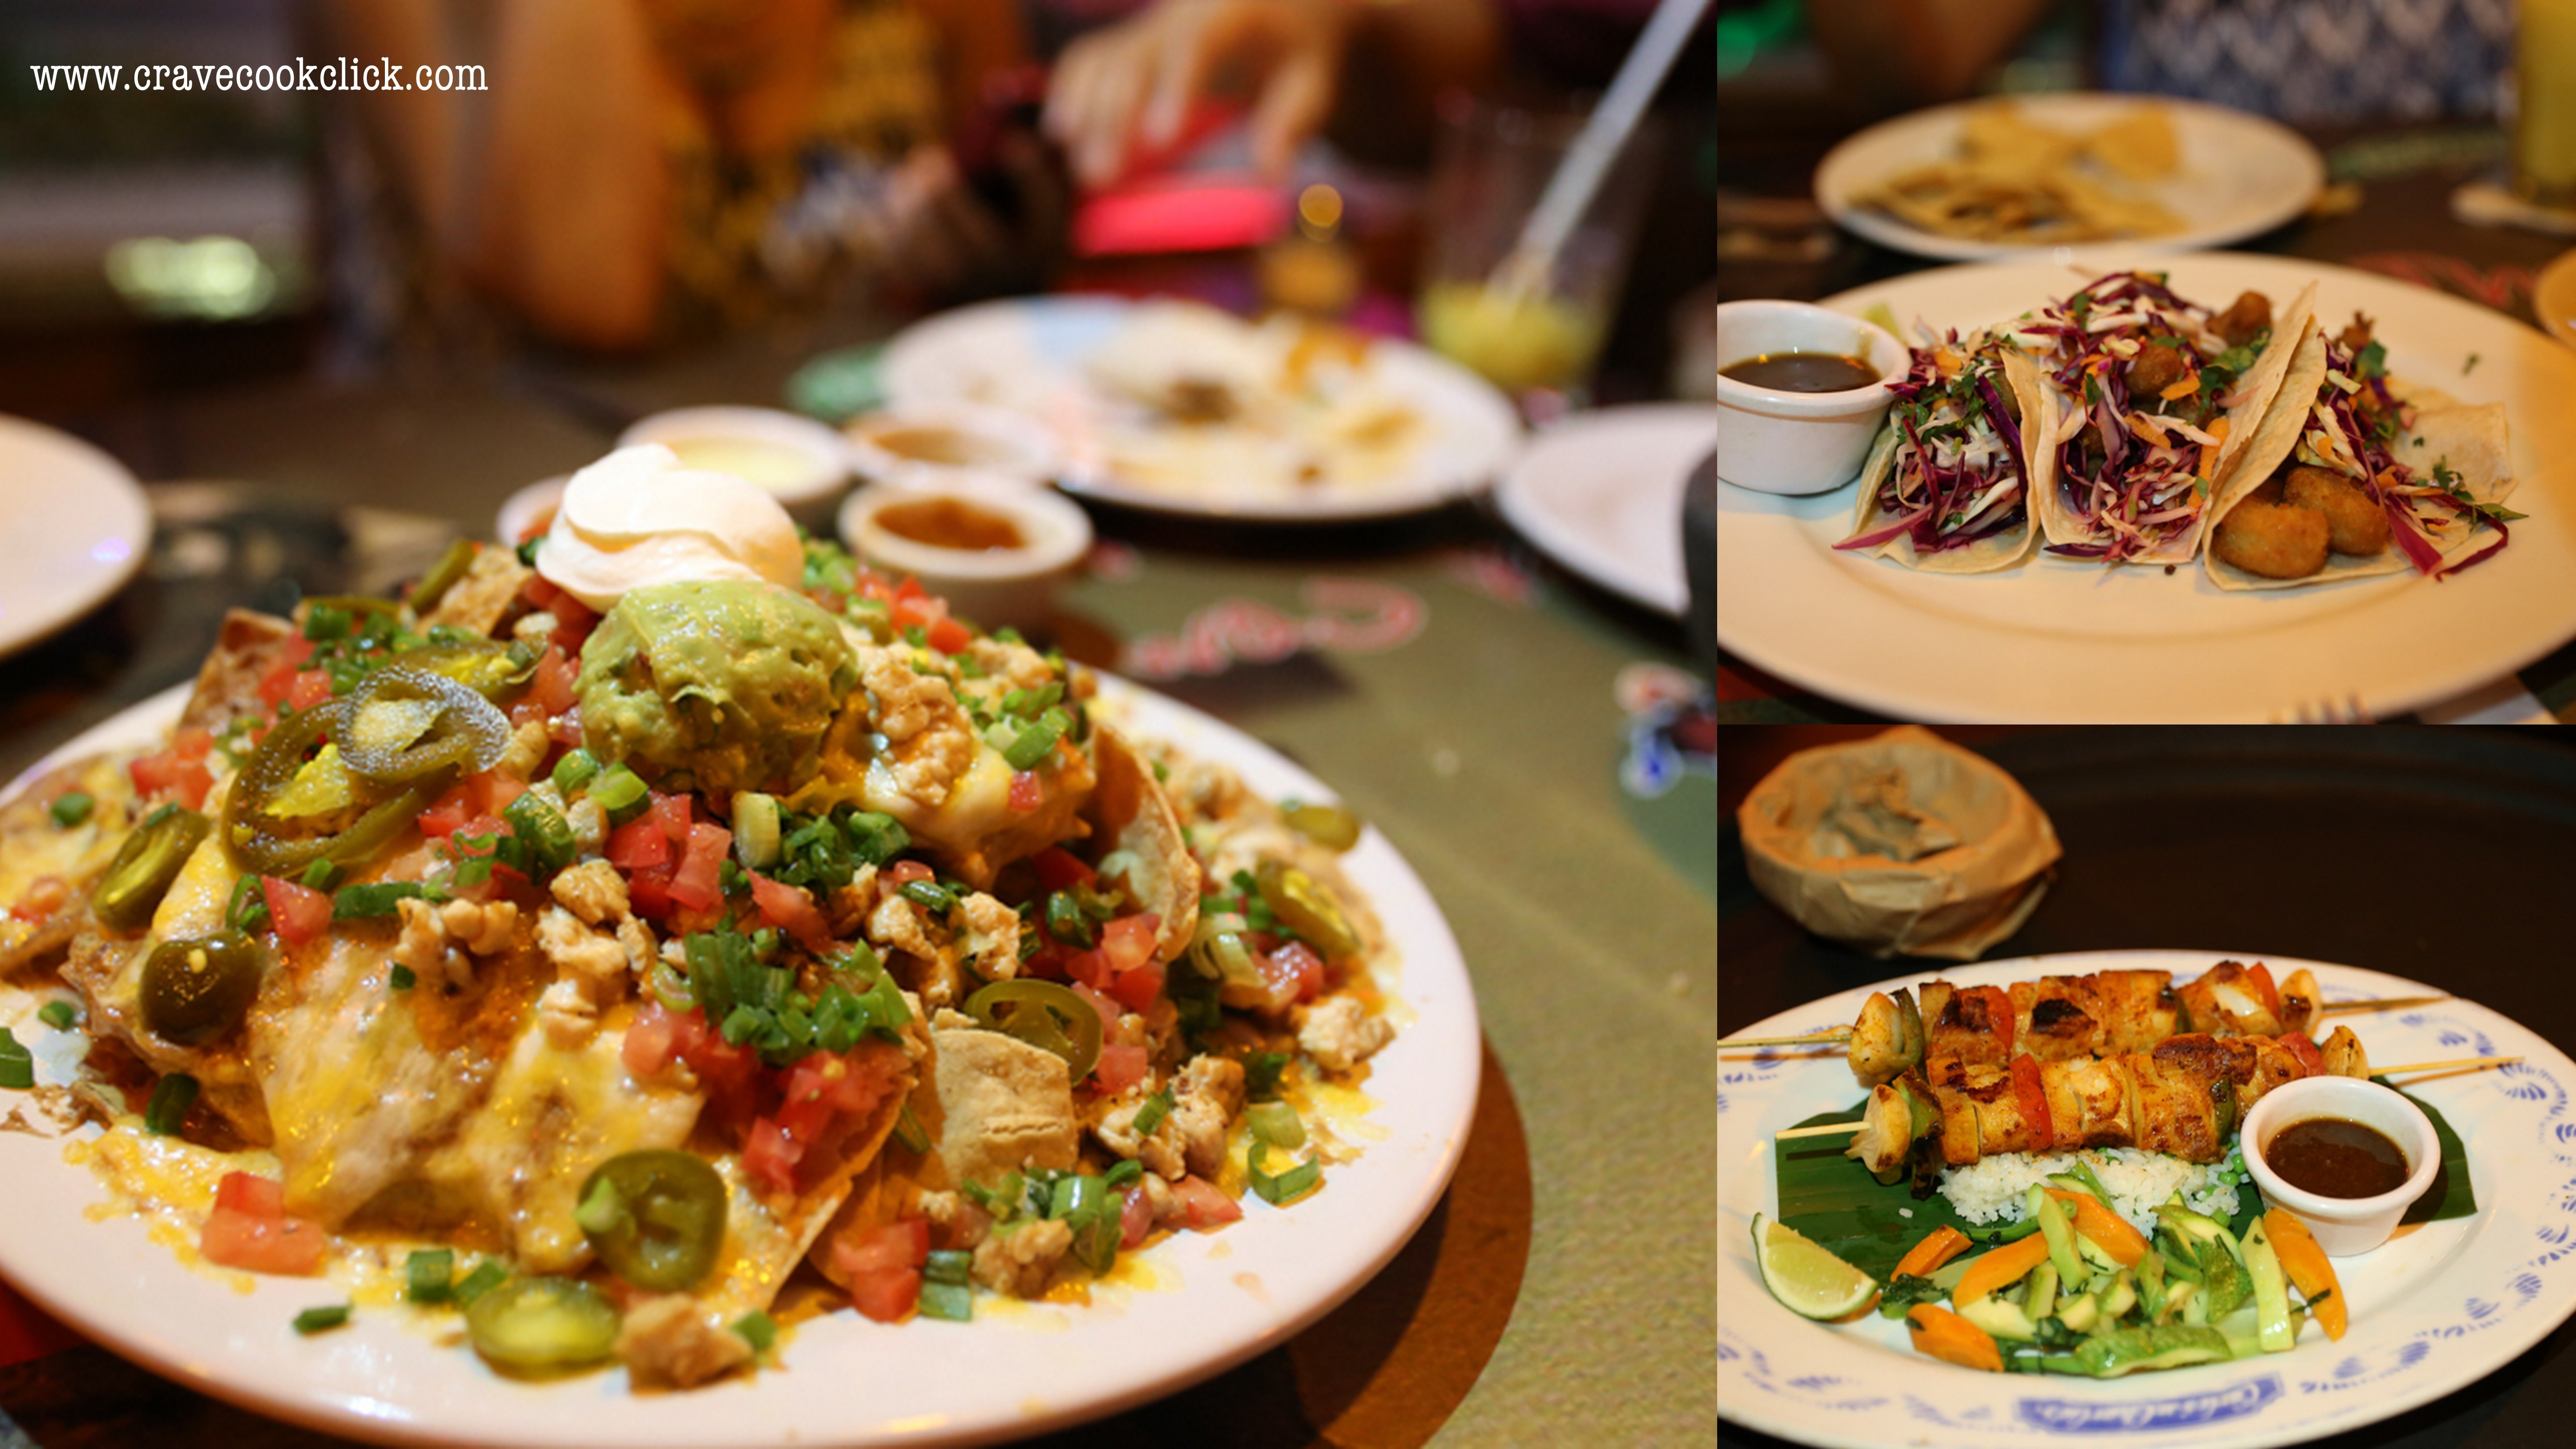 the mexican food for the traveling enthusiasts in the mexico In this article you will learn more about cabo san lucas,  cabo san lucas and the cabo corridor usually attract beach enthusiasts,  mexican food mexico vacations.